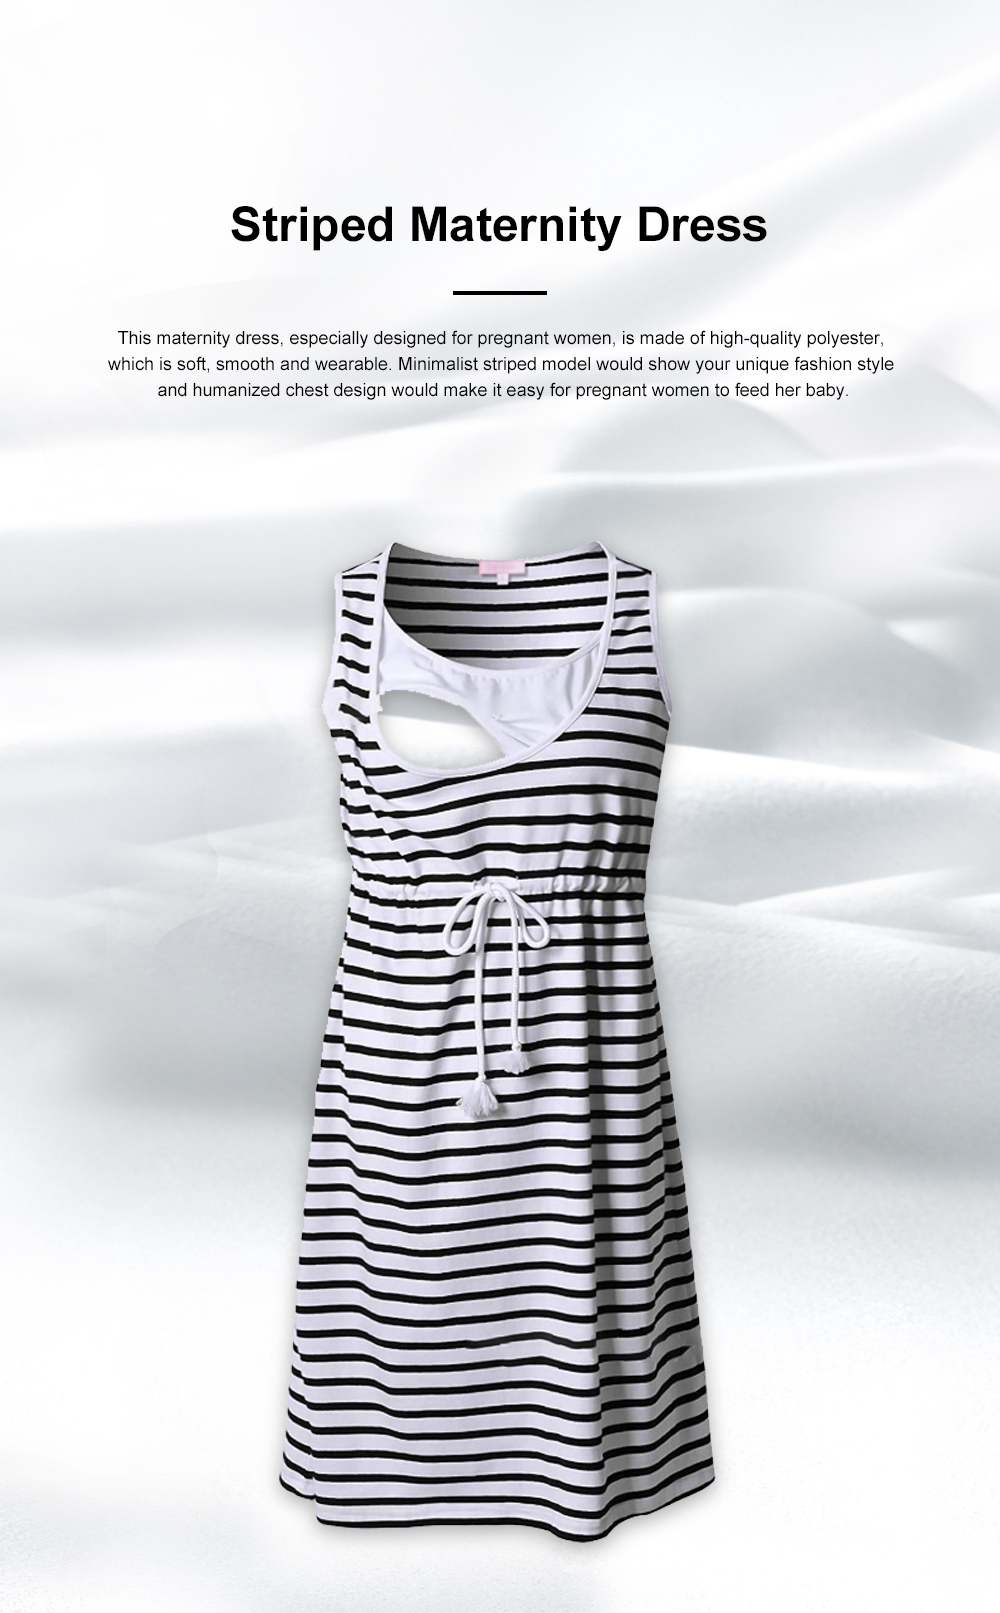 Contrast Colored Striped Maternity Dress, Pregnant Woman Cloth Nursing Dress with Drawstring Waist 0